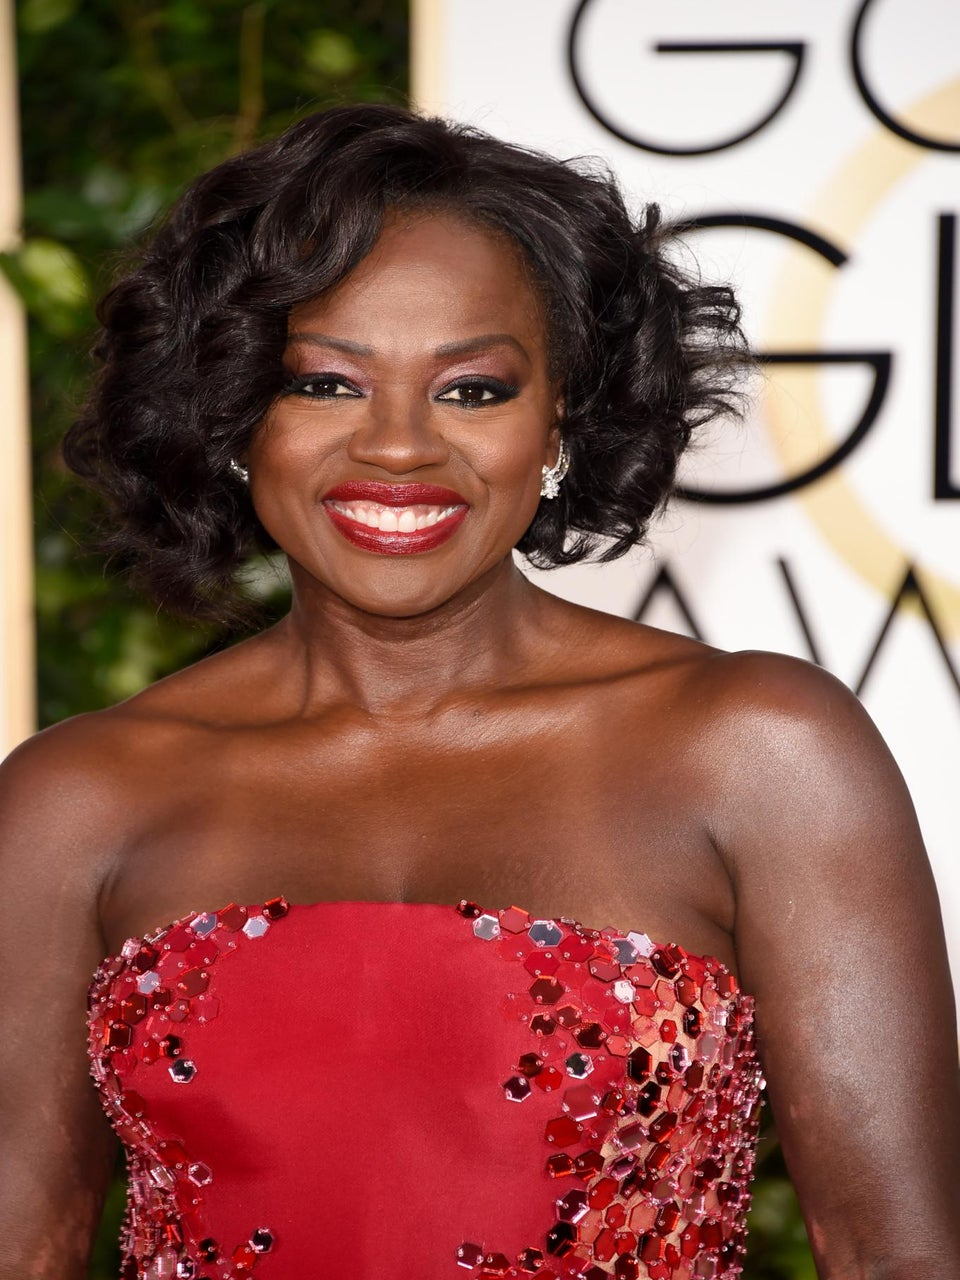 Viola Davis on Finding Her Sexy: 'It Feels Really Good to Embrace Exactly Who I Am'